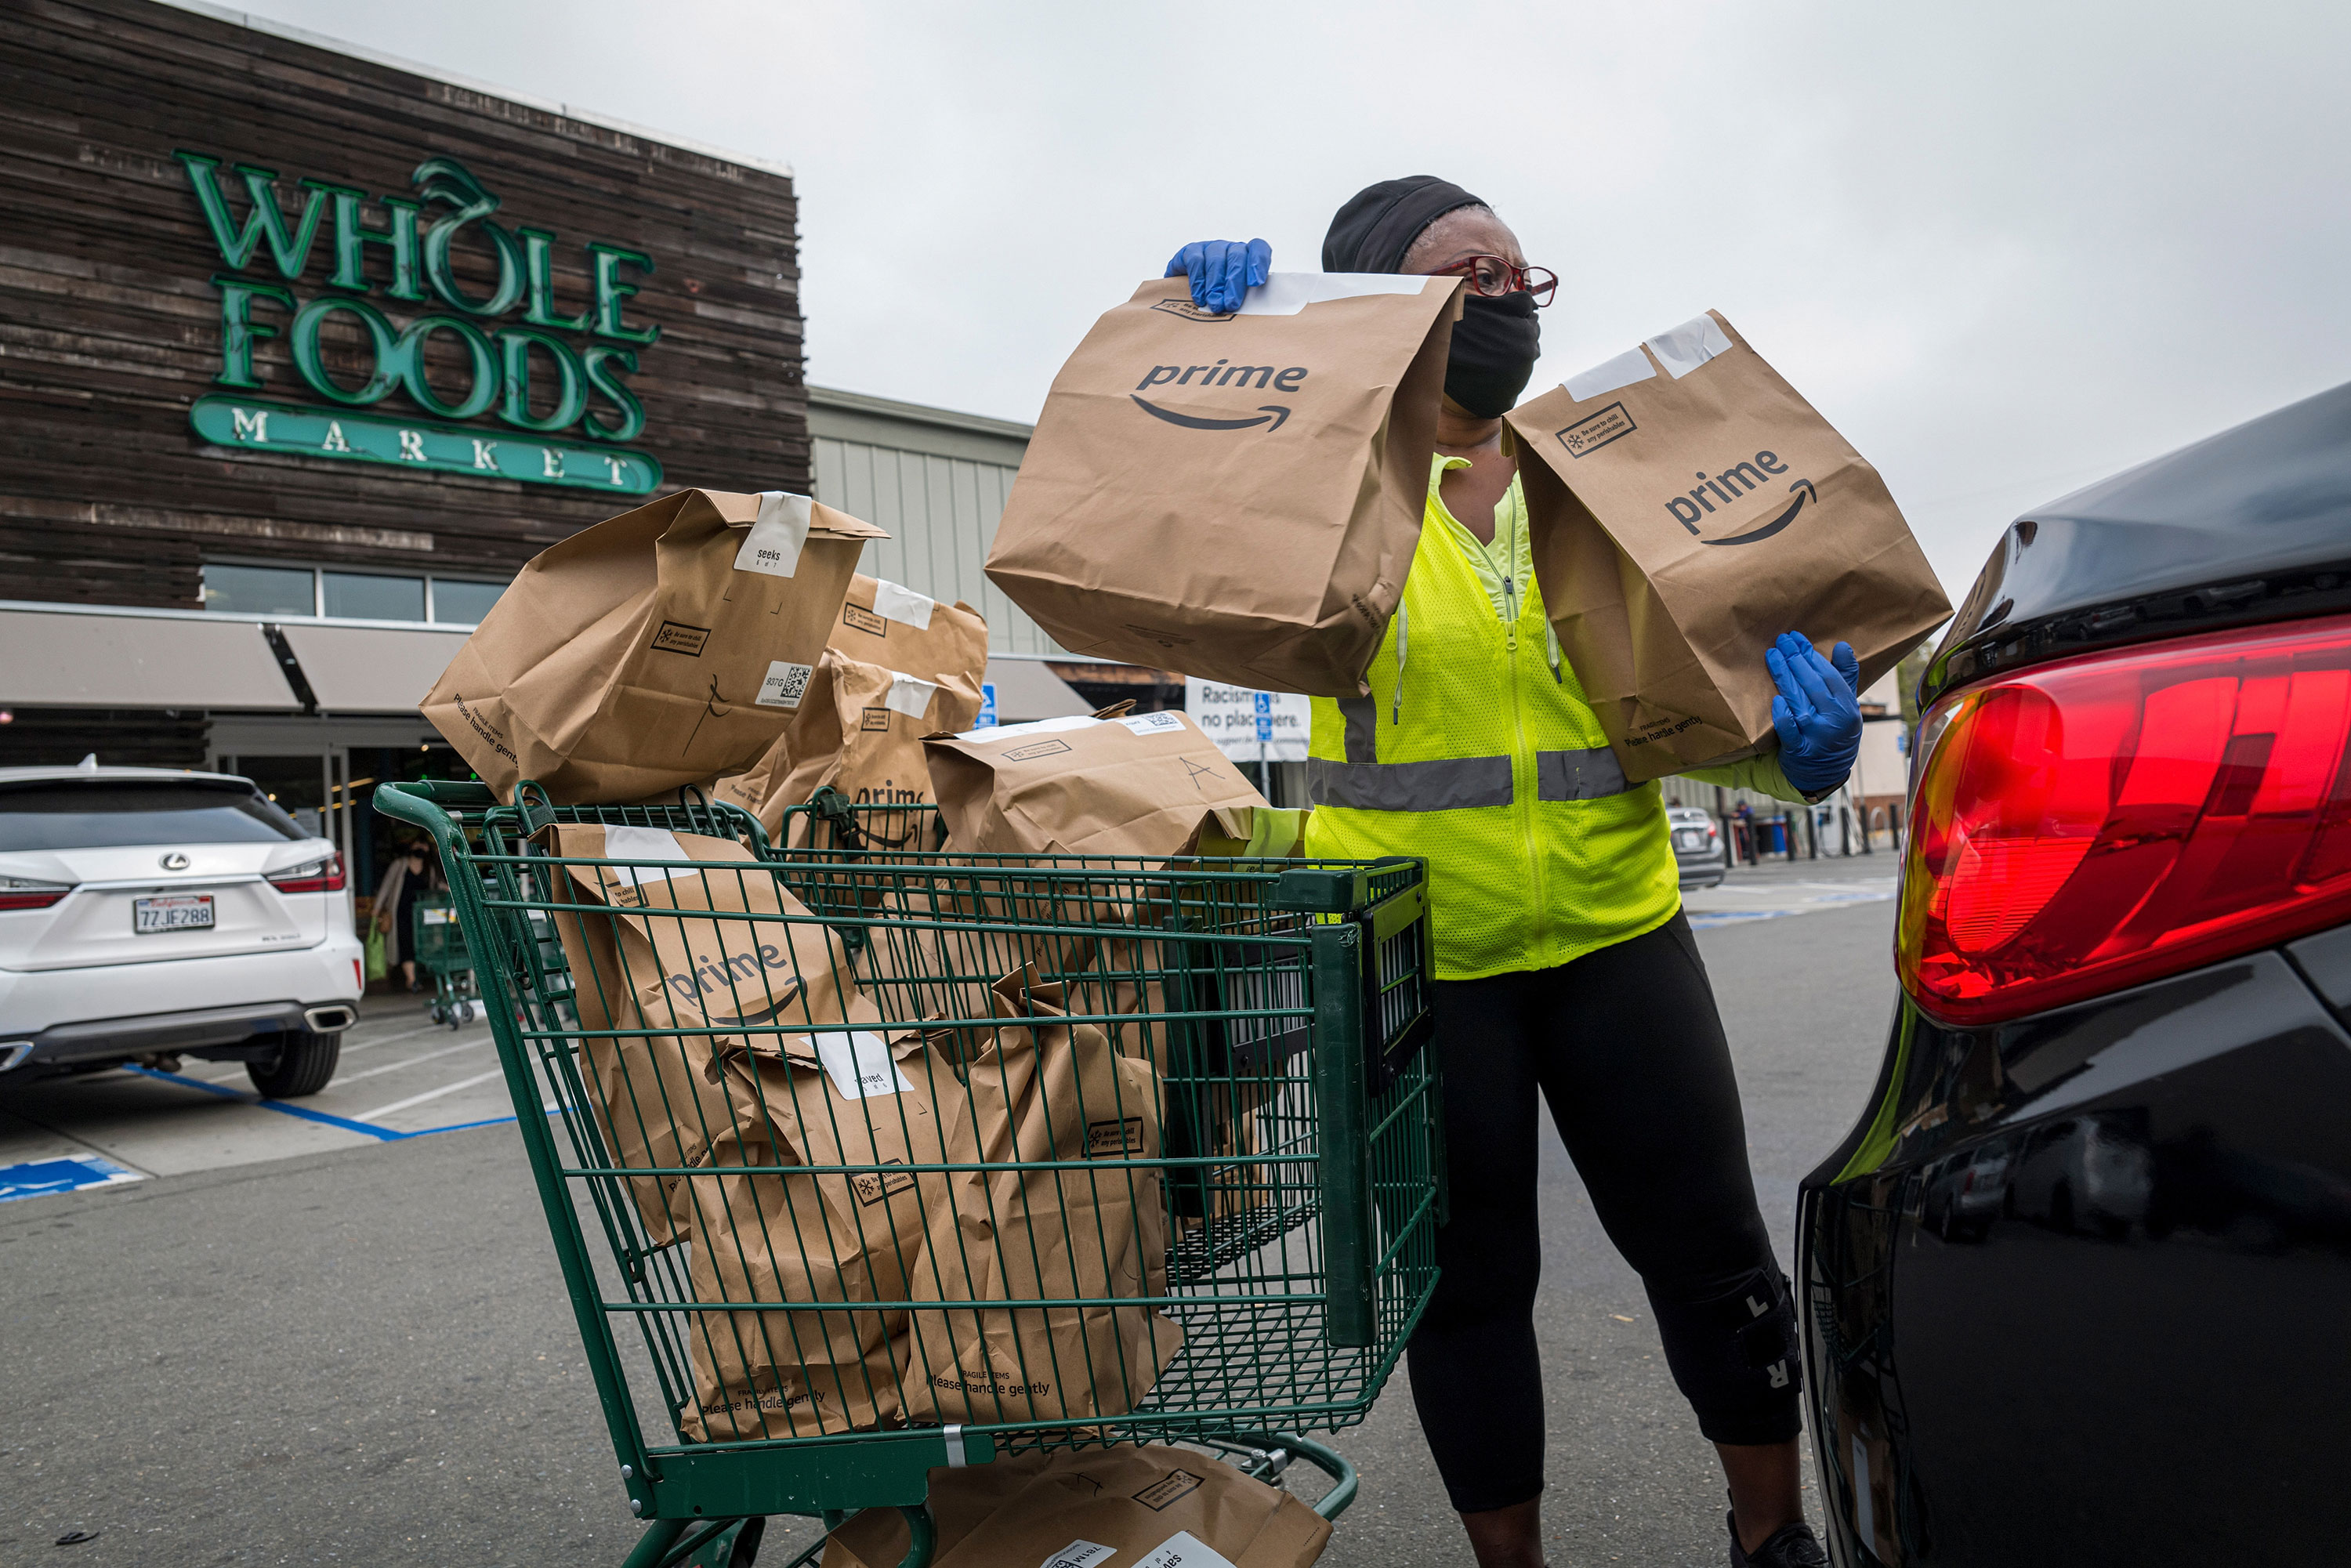 Whole Foods will now get your groceries ready for pickup in one hour